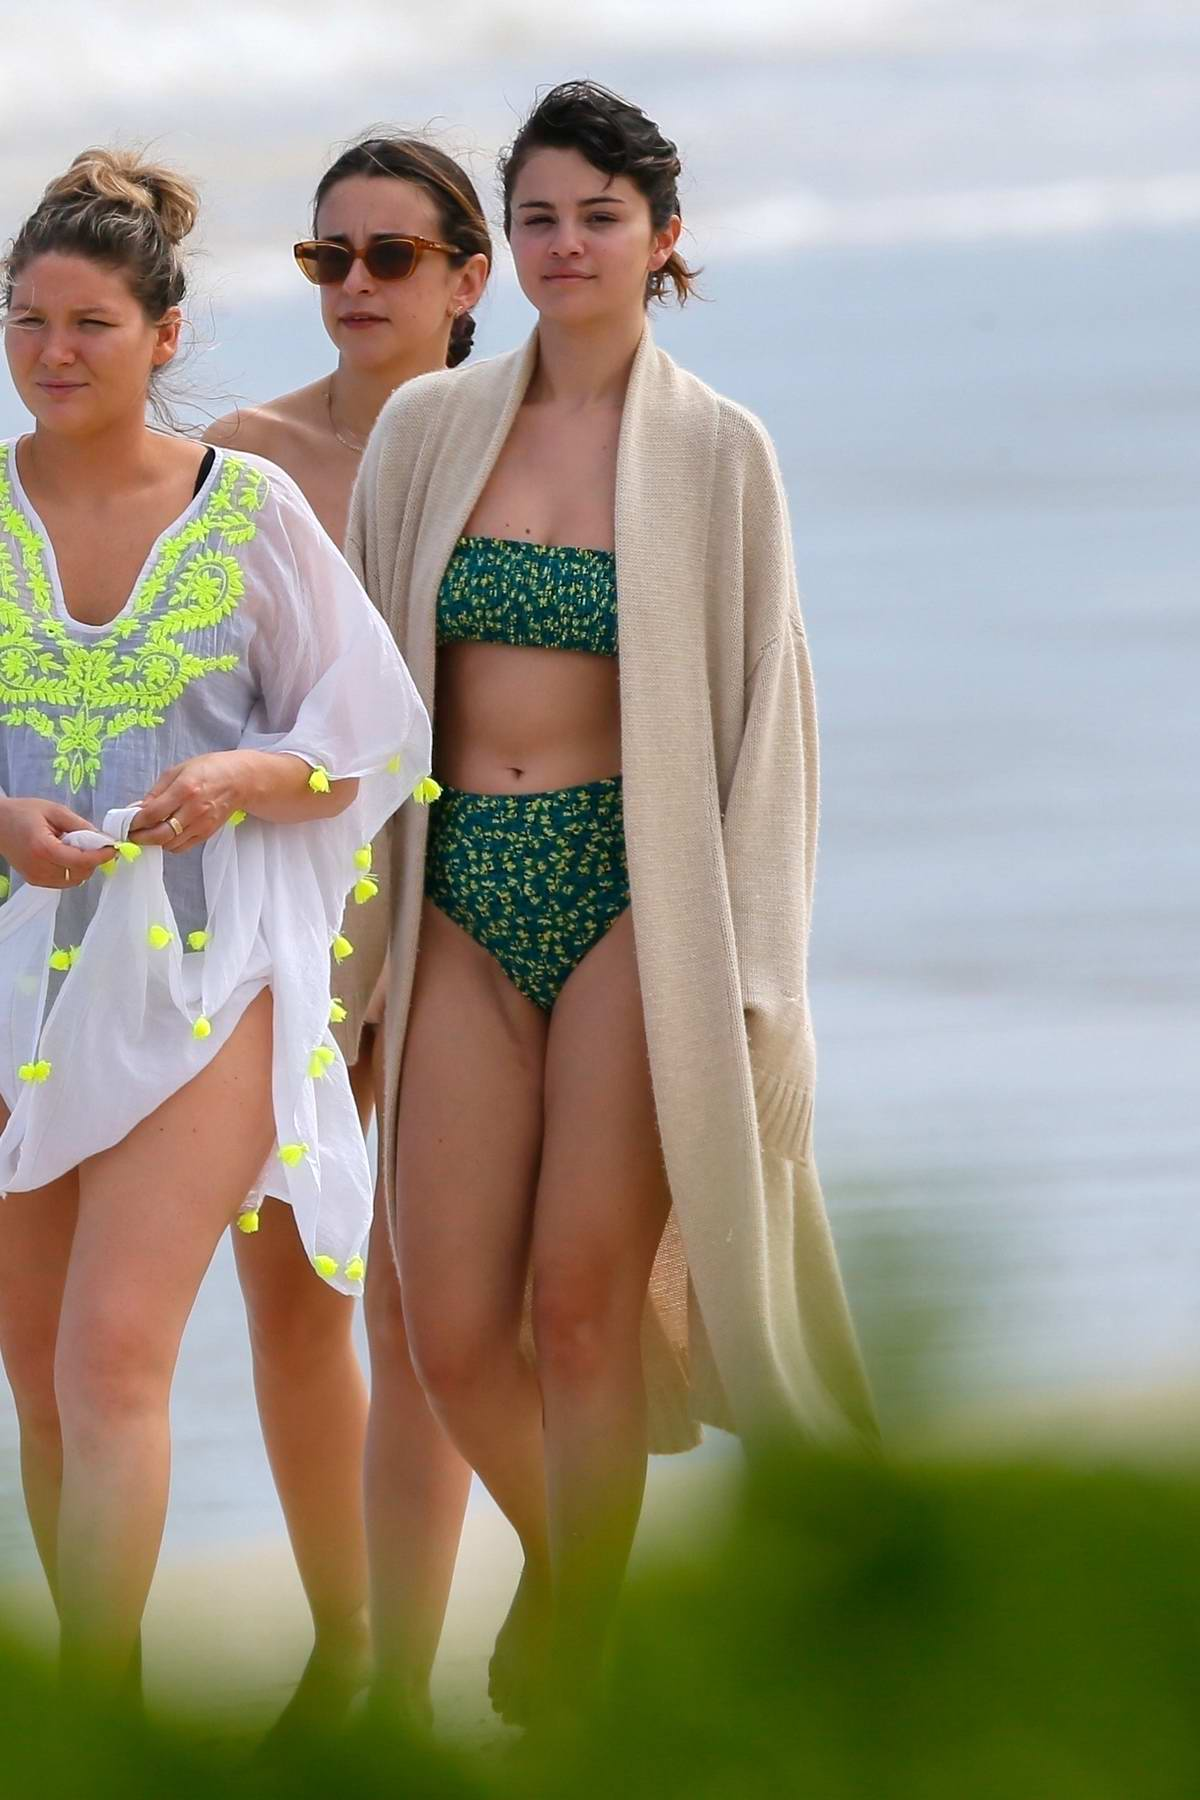 Selena Gomez seen wearing a green bikini while at the beach with friends in Honolulu, Hawaii